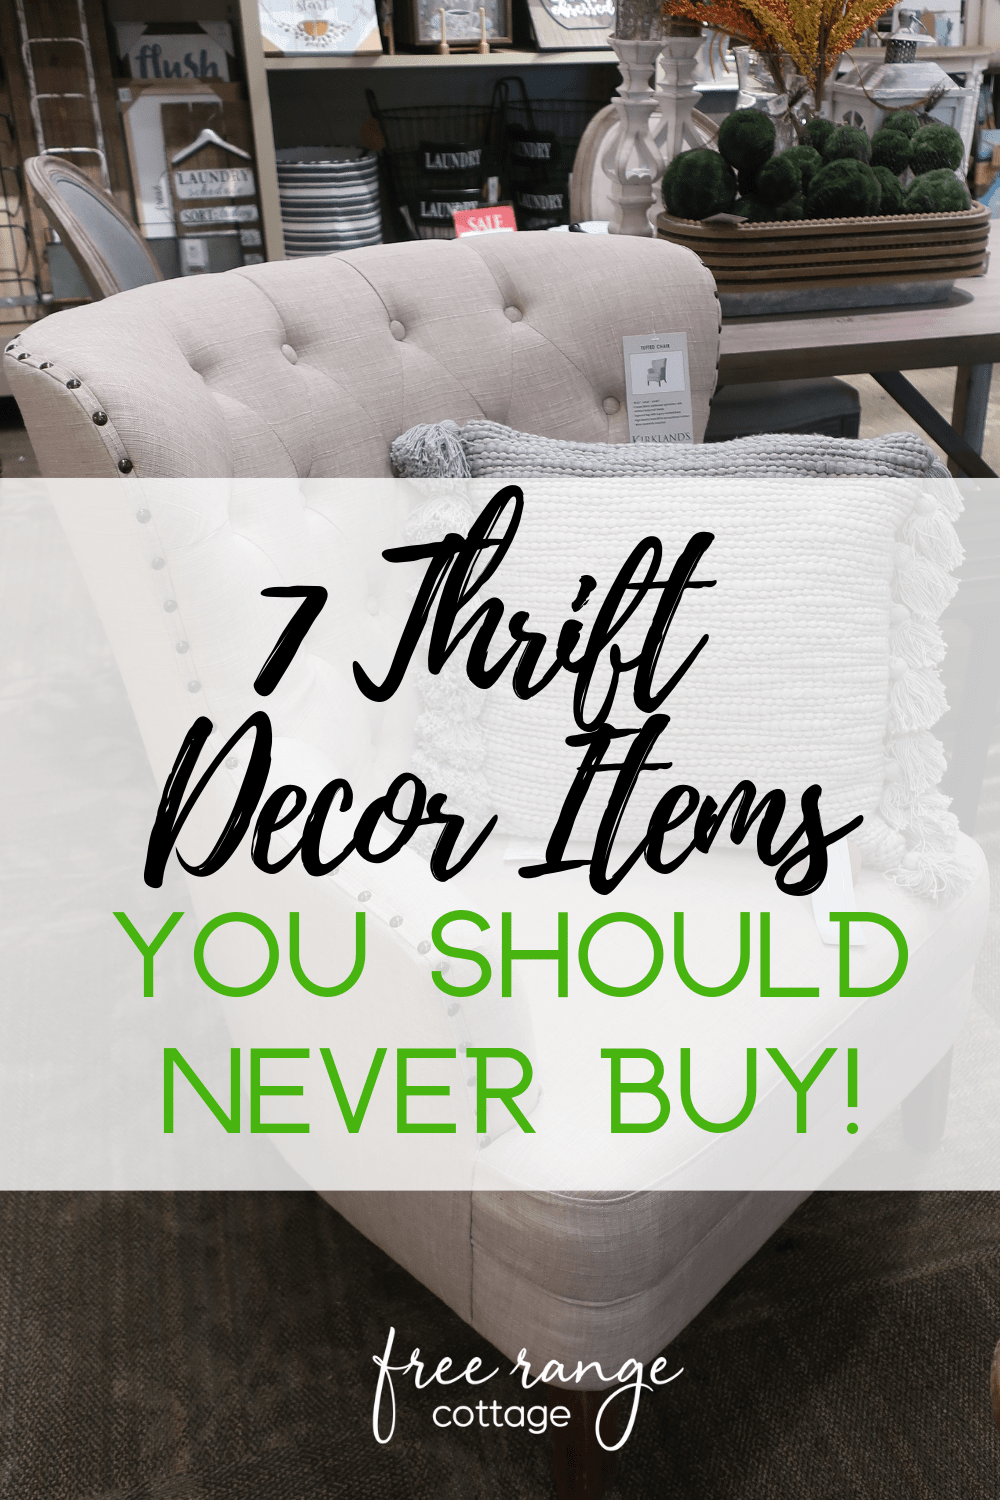 7 Thrifted Home Decor Items You Should Never Buy! - Free Range Cottage